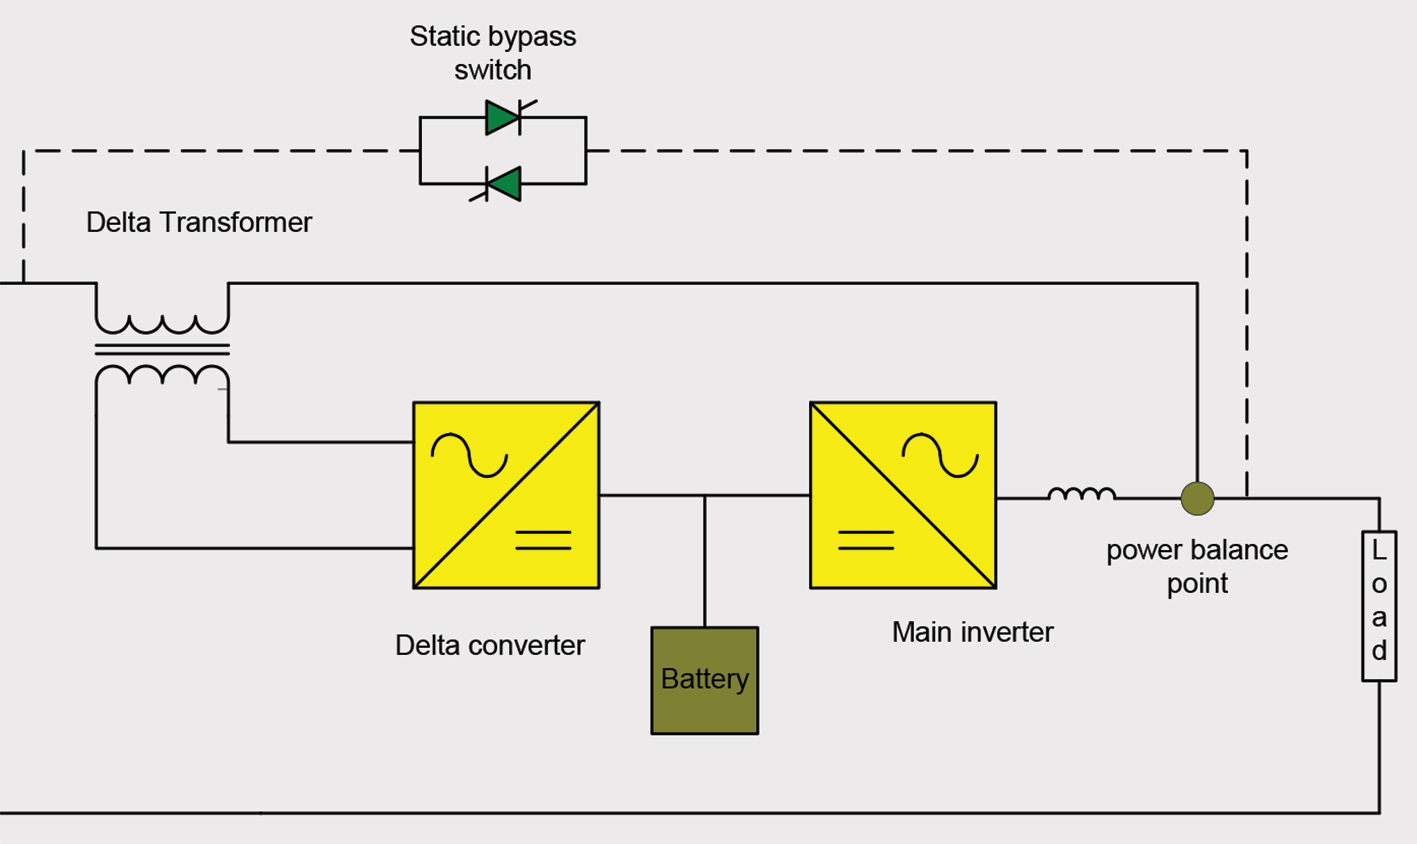 Ups Design With Active Series Parallel Power Line Conditioning Ee Bypass Switch Wiring Diagram 3 The Delta Conversion Apc